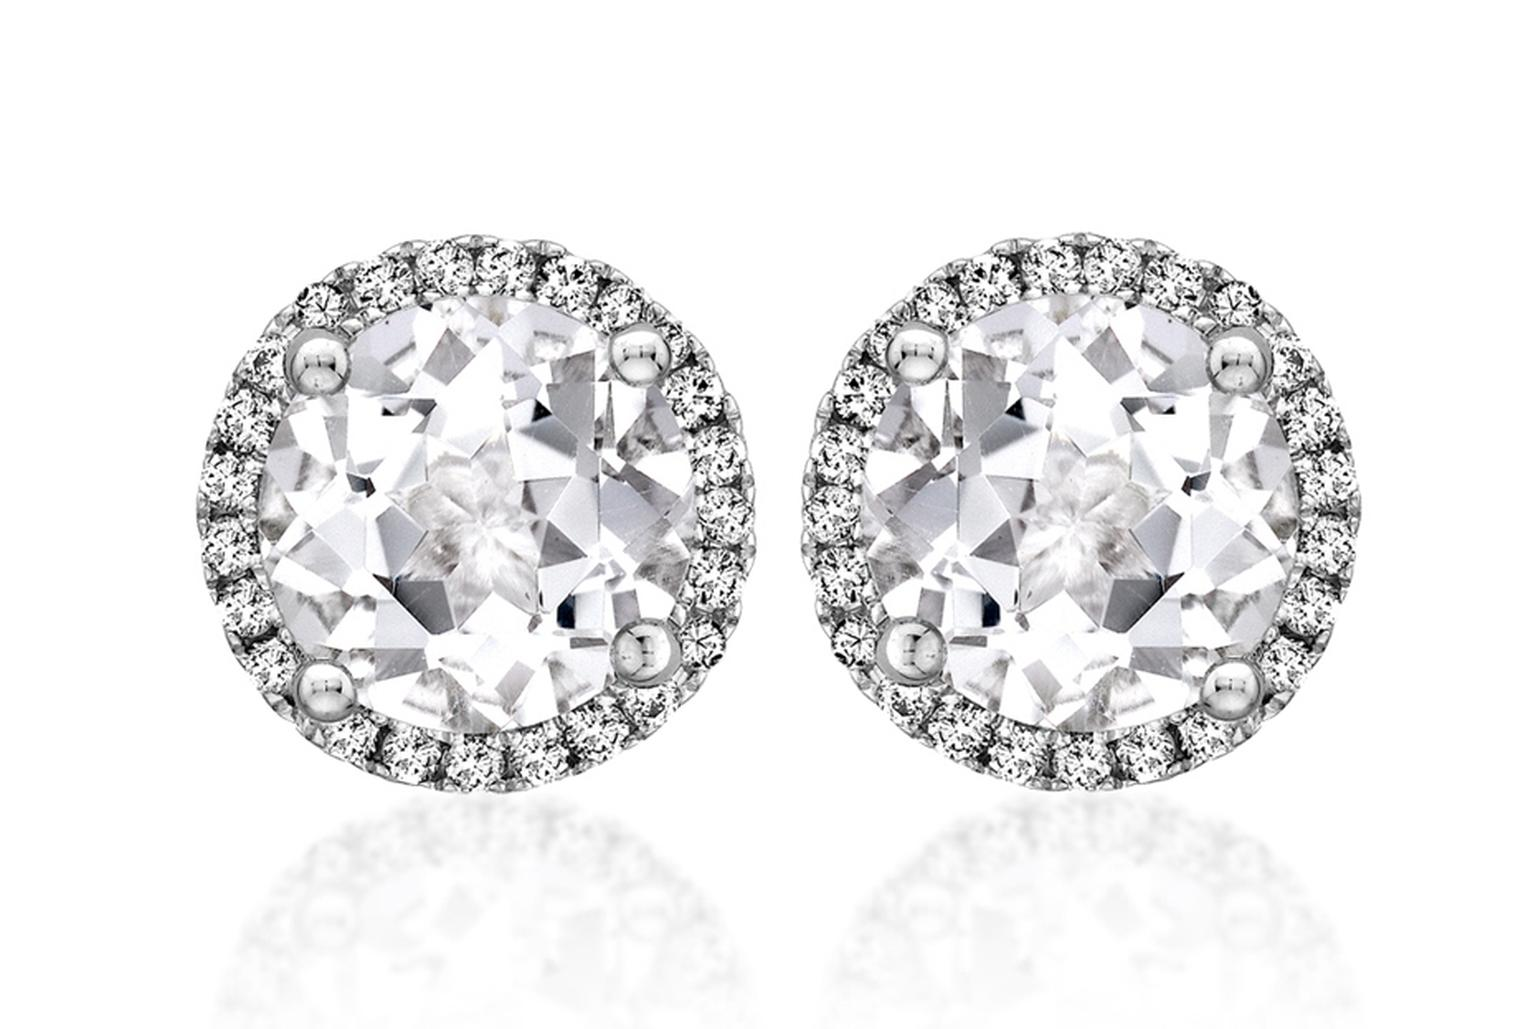 Kiki McDonough Grace studs with white topaz and diamonds (£695).